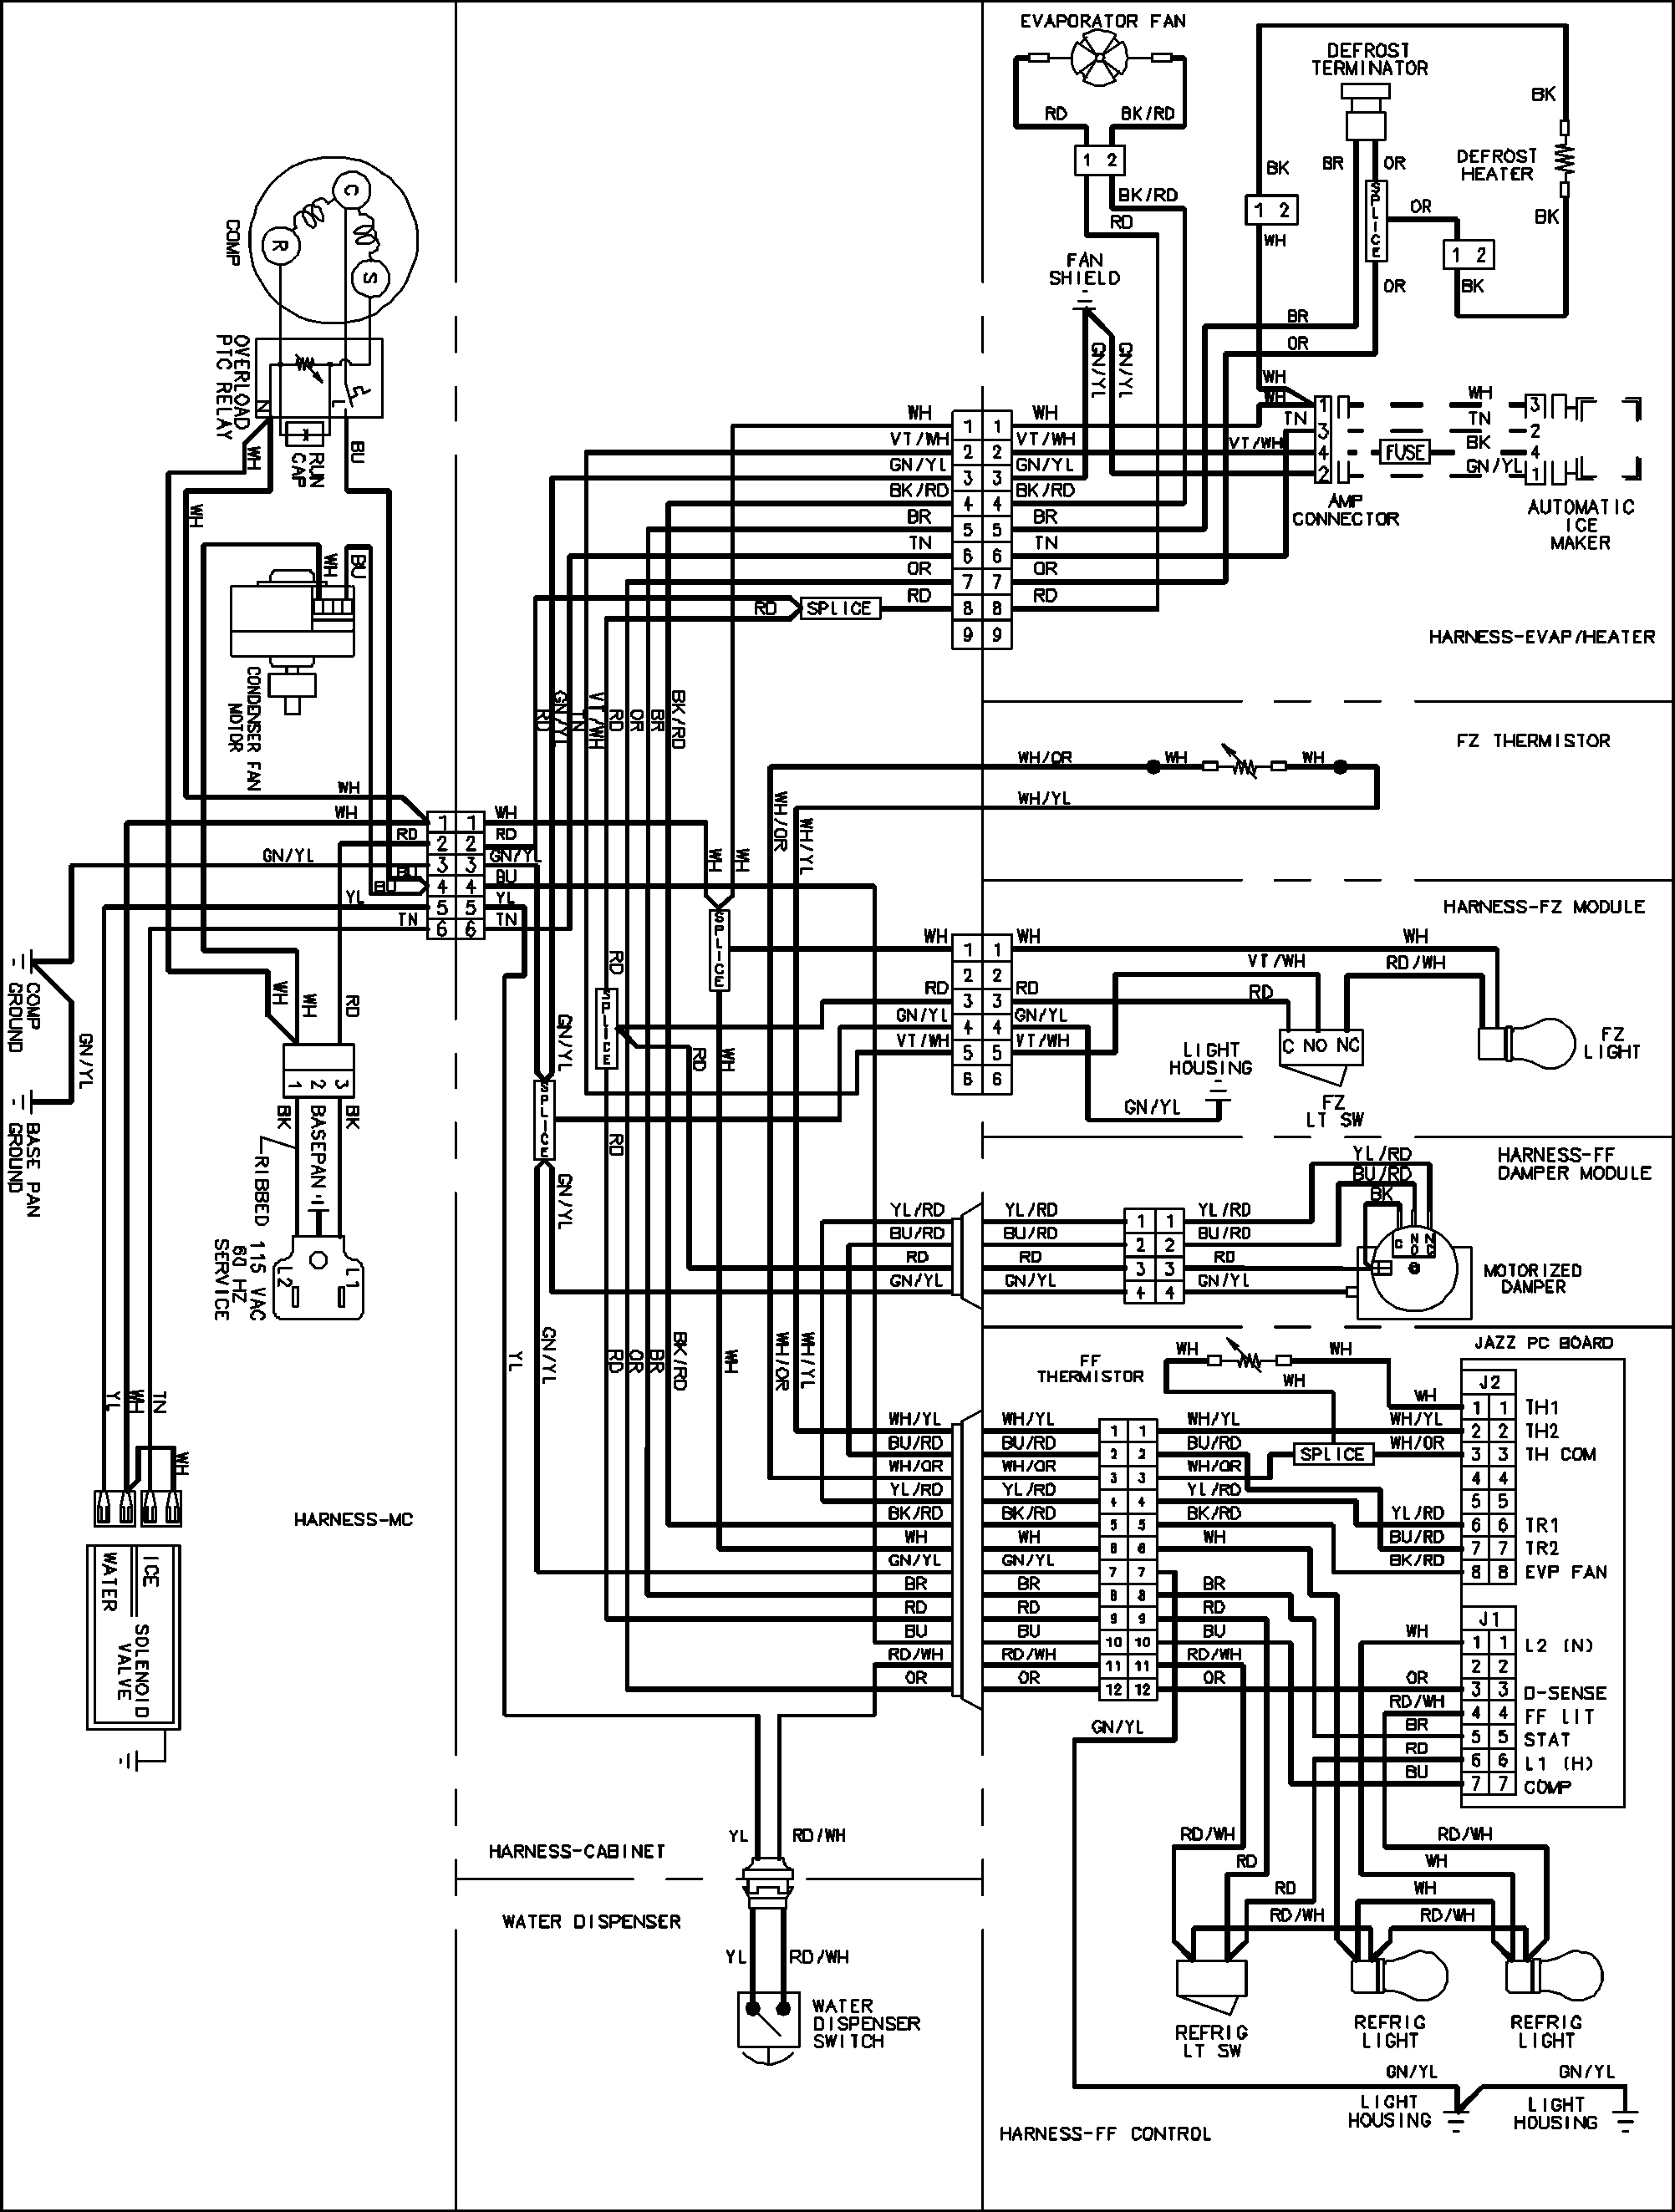 on kelvinator refrigerator wiring diagram